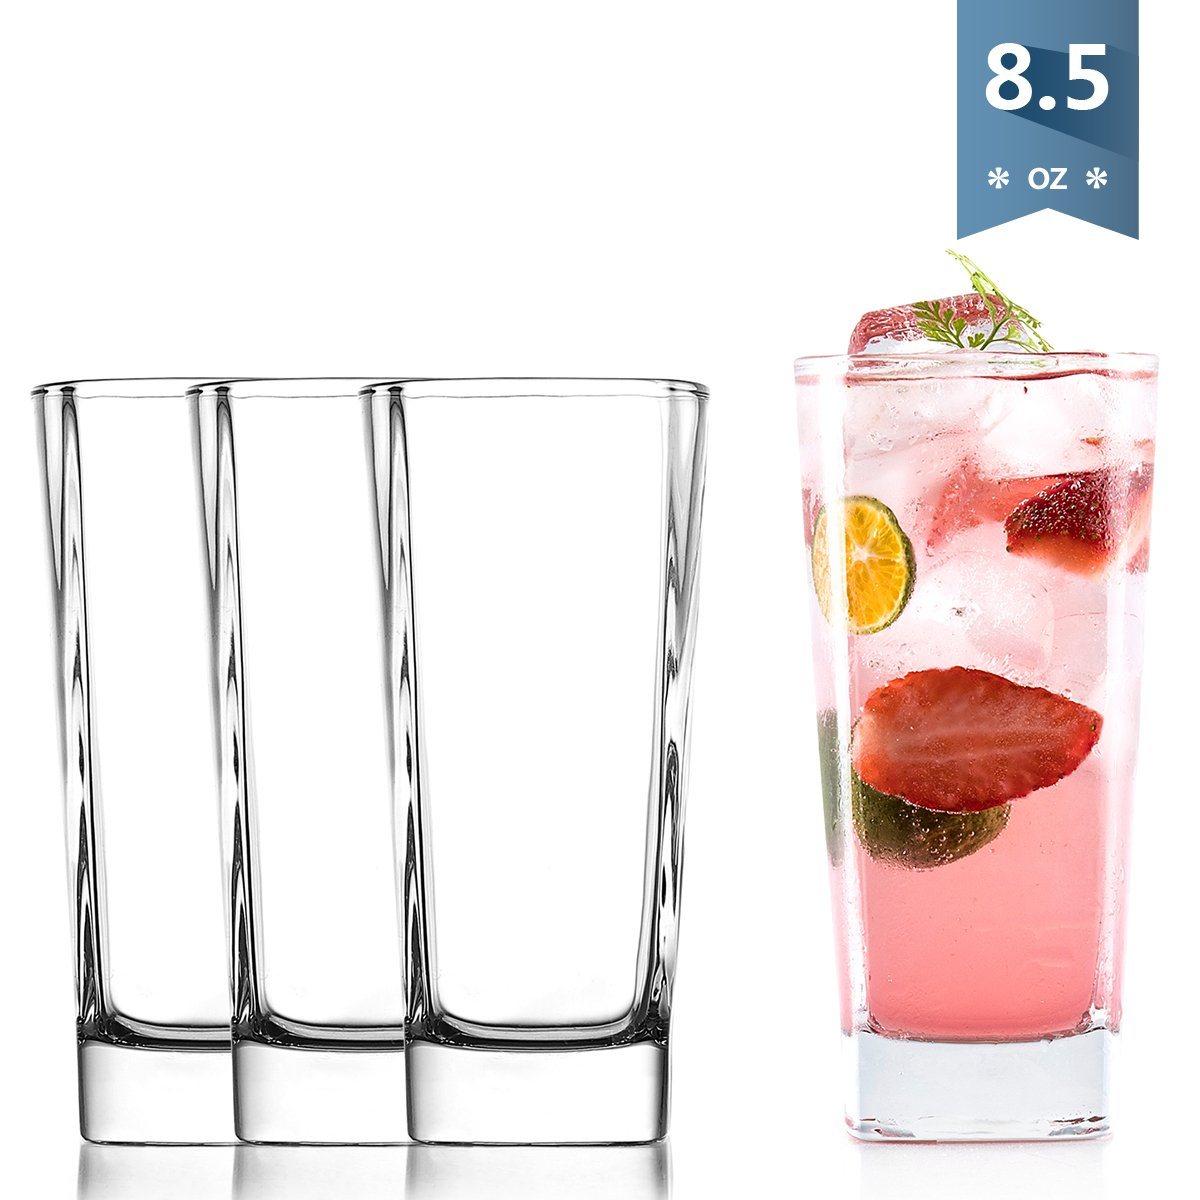 Sweese 4693 Square Drinking Glasses, Heavy Base Highball Glasses for Water, Juice, Whiskey and Cocktail, Set of 4, 8.5-Ounce